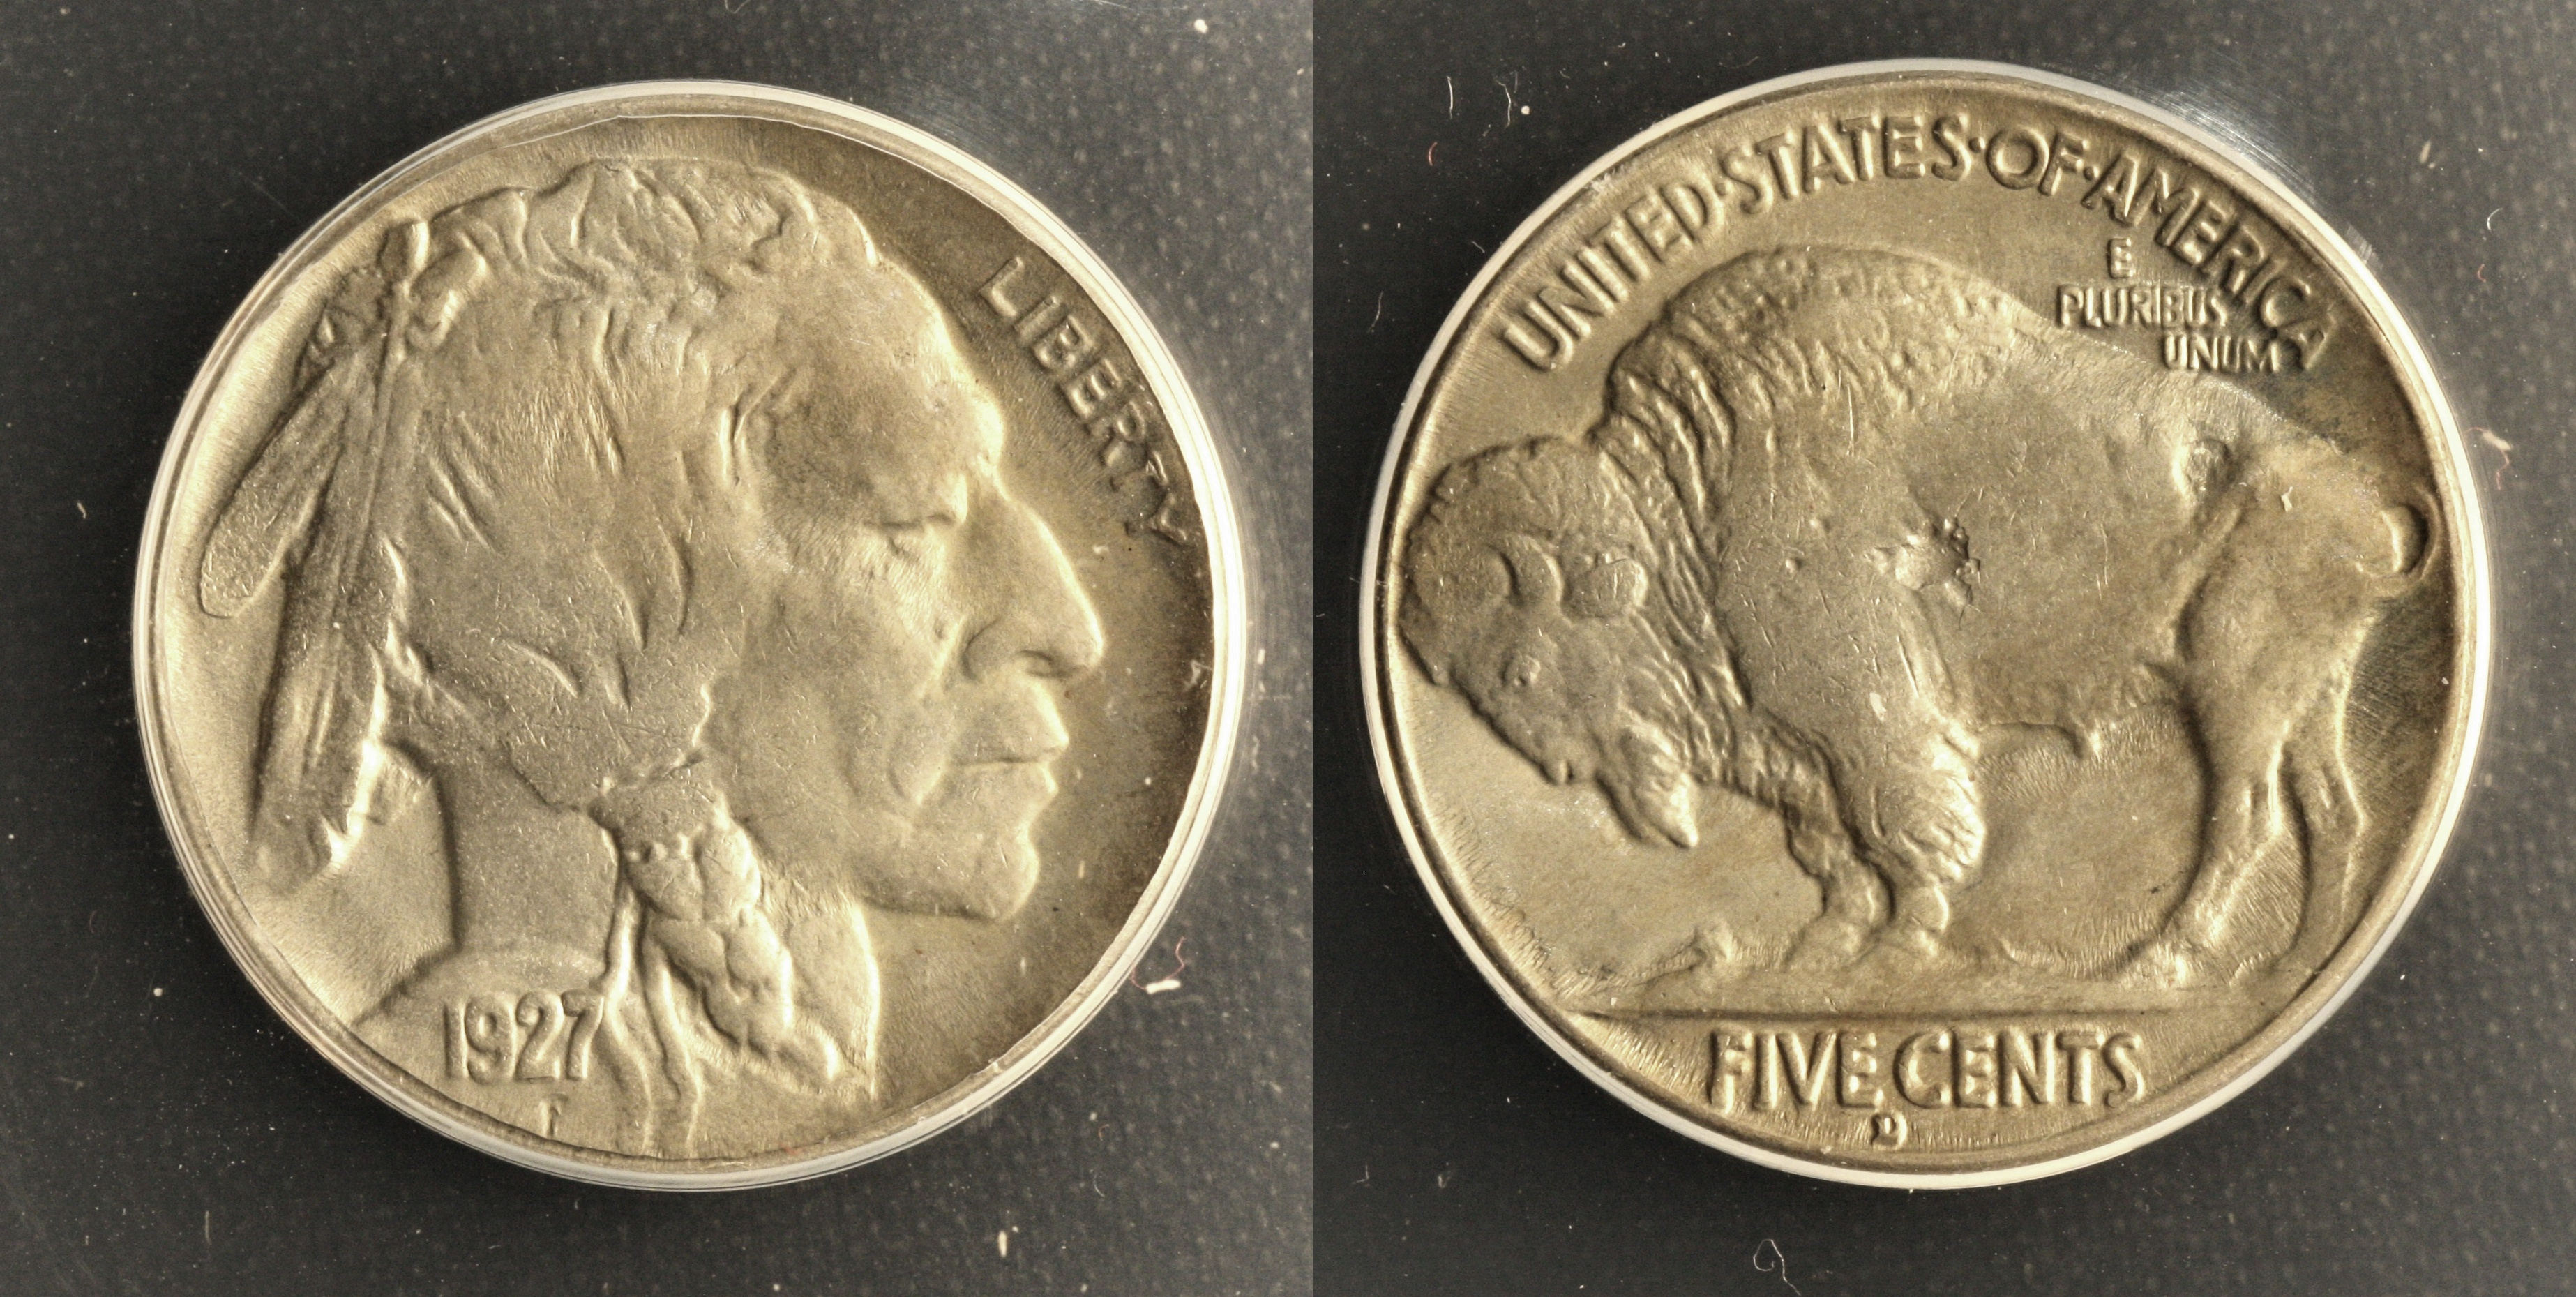 1927-D Buffalo Nickel ANACS MS-64 Struck Through Error camera